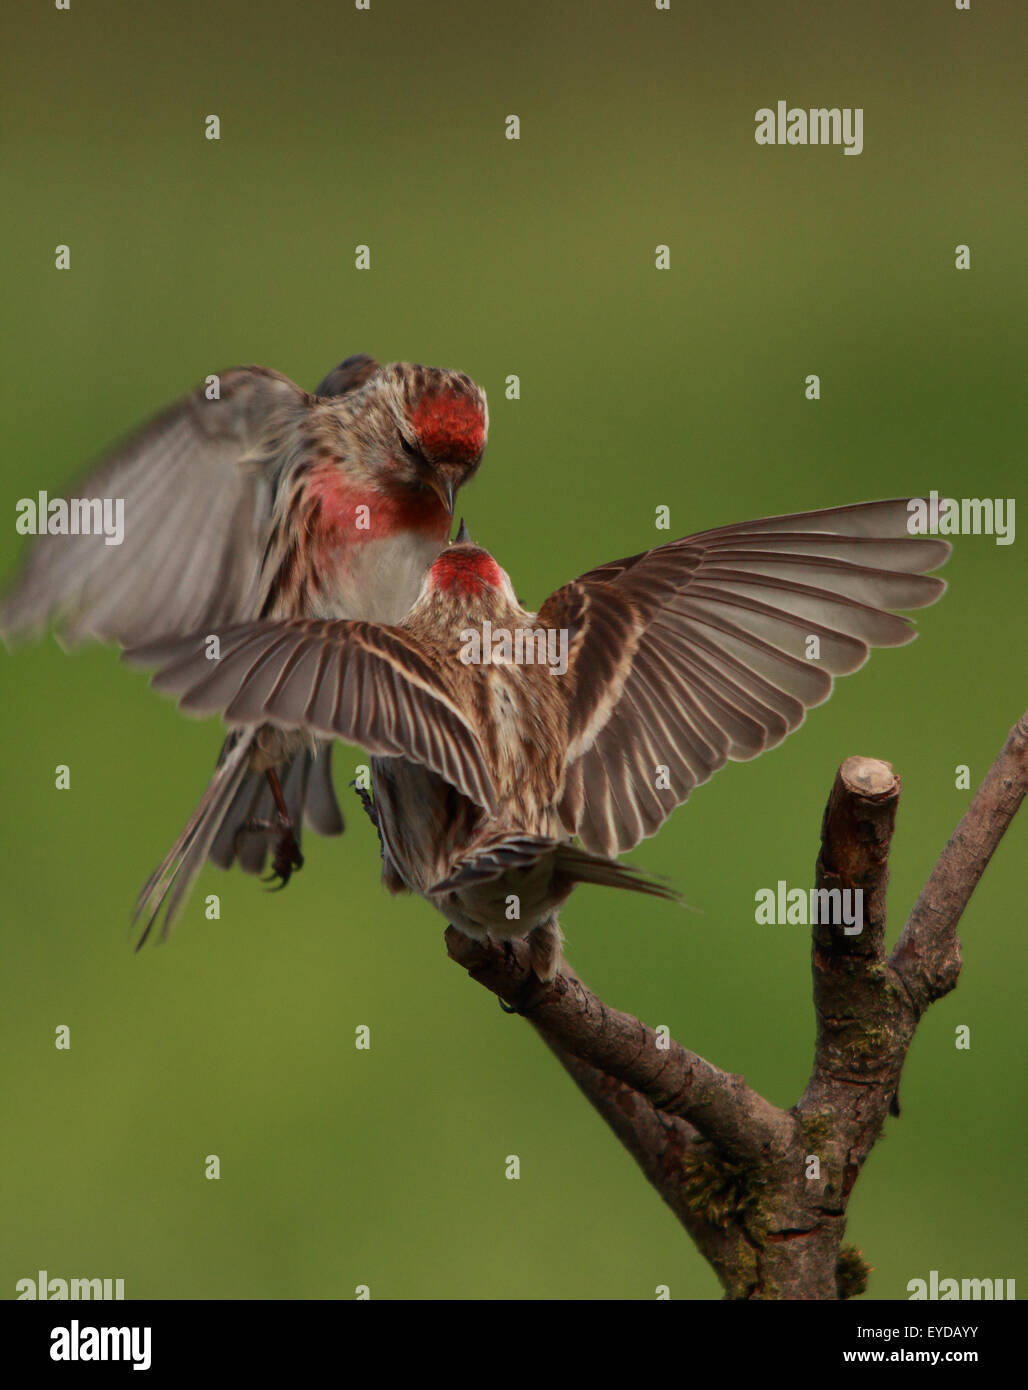 A couple of lovely Lesser Redpoll's, also known simply as Redpoll, fighting in half air and half perched - Stock Image